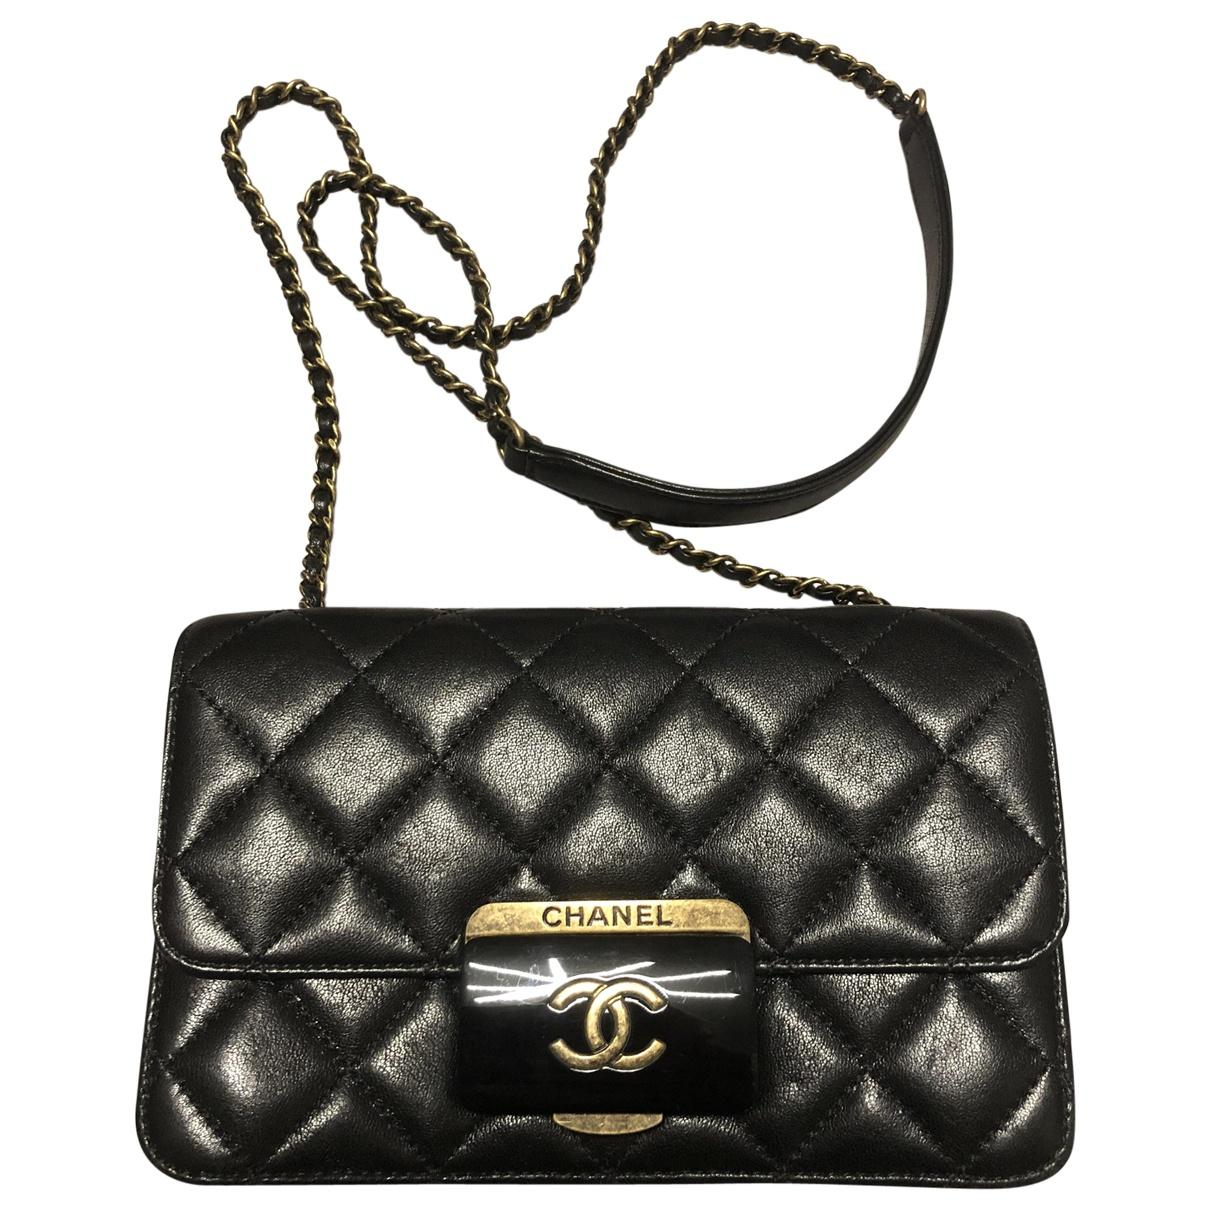 Lyst Chanel Pre Owned Black Leather Handbags In Black